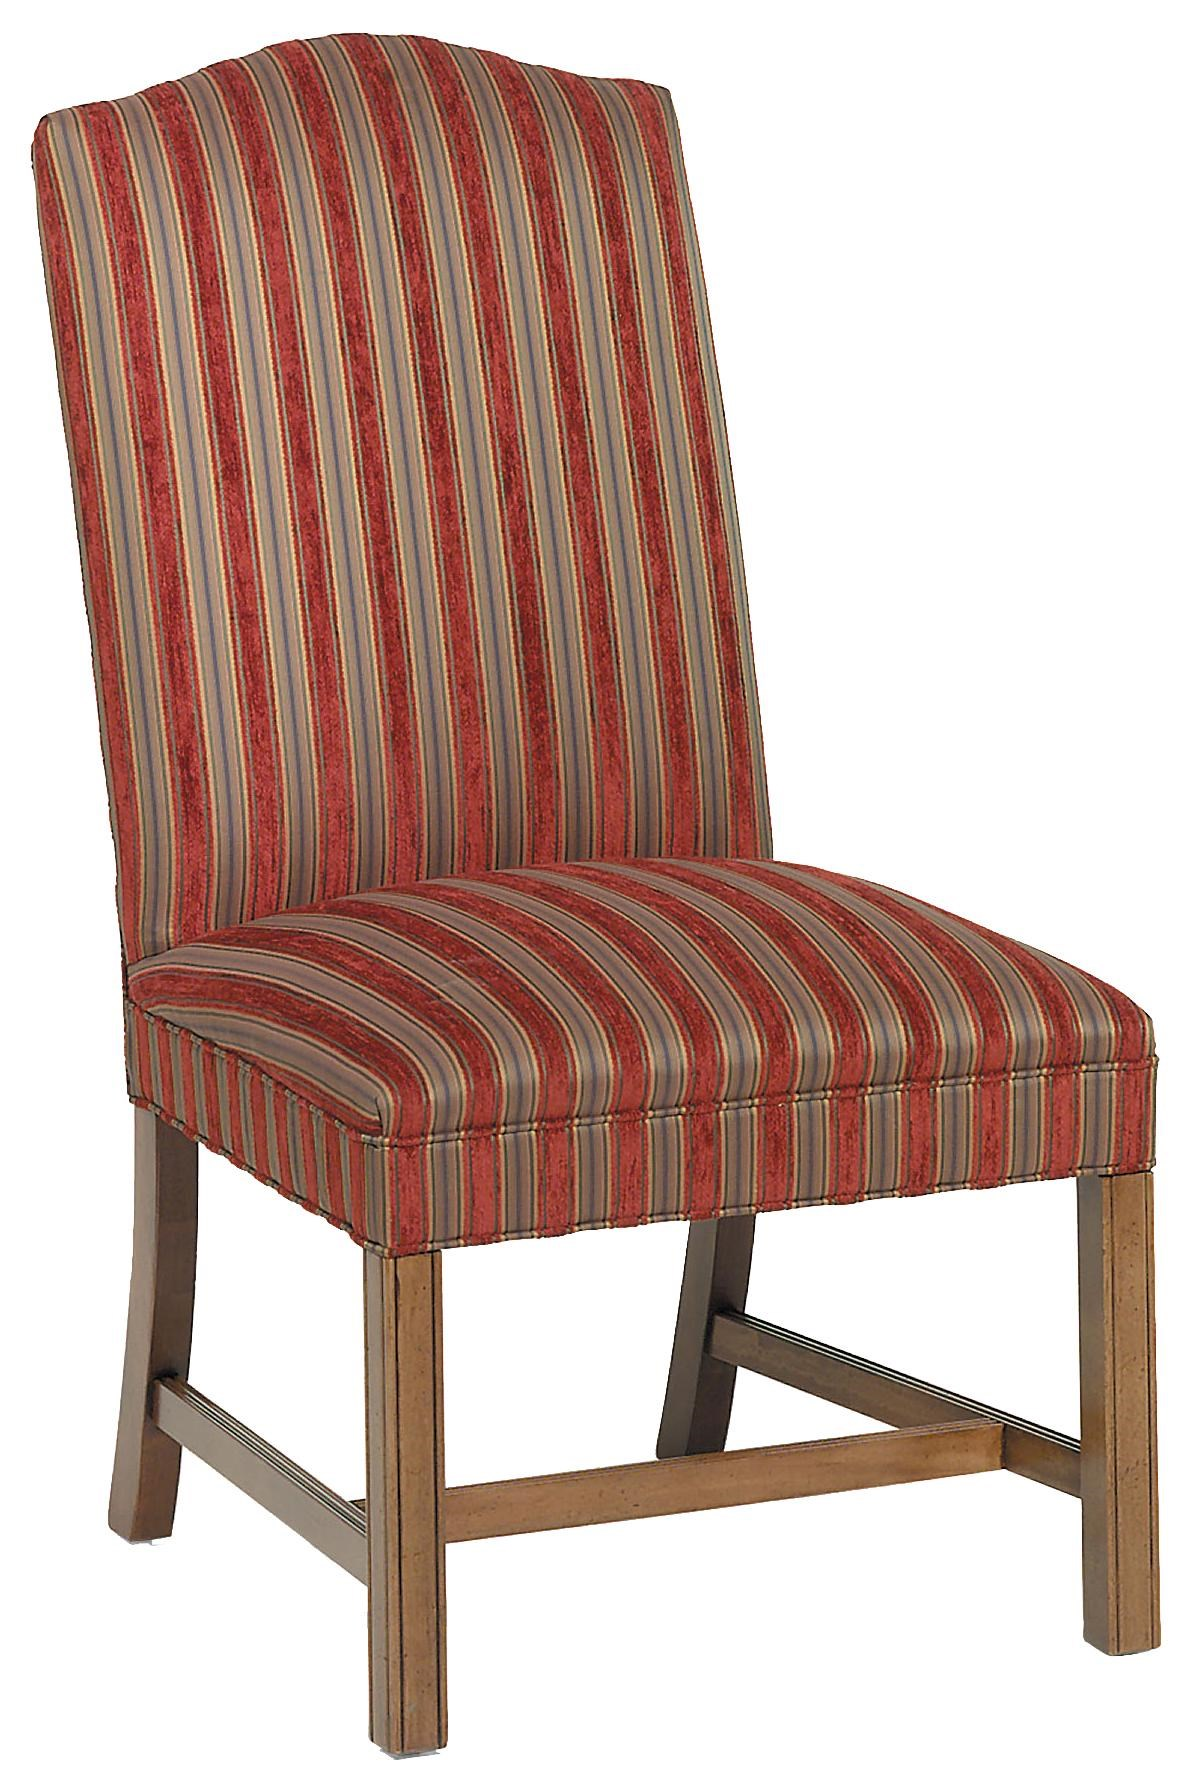 Fairfield Chairs Fairfield Chairs Serene Exposed Wood Chair Wayside Furniture